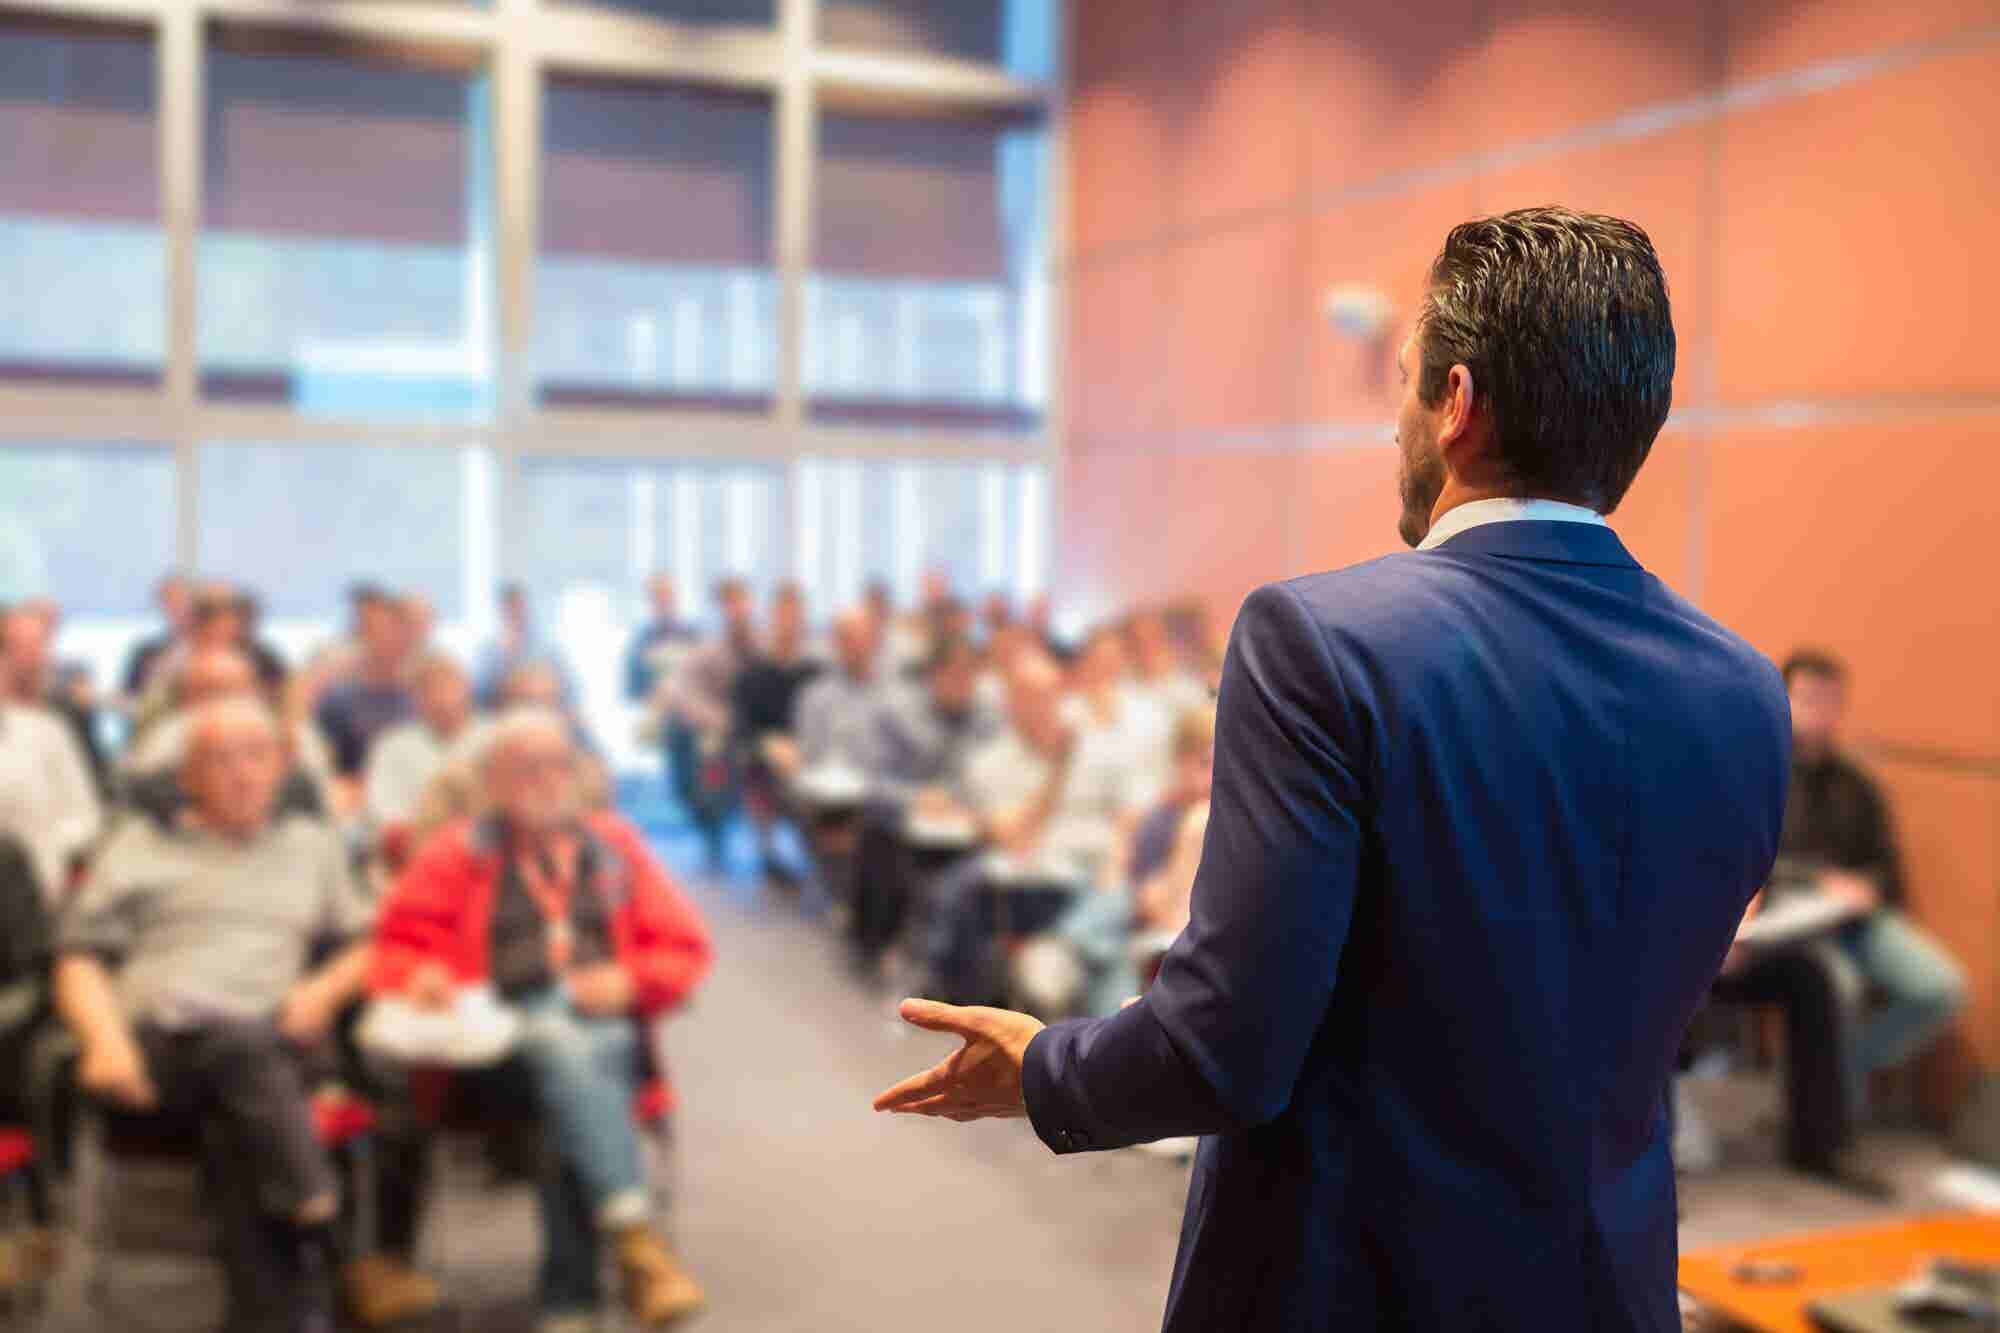 This Course Can Help You Overcome Doubts and Reach Peak Potential